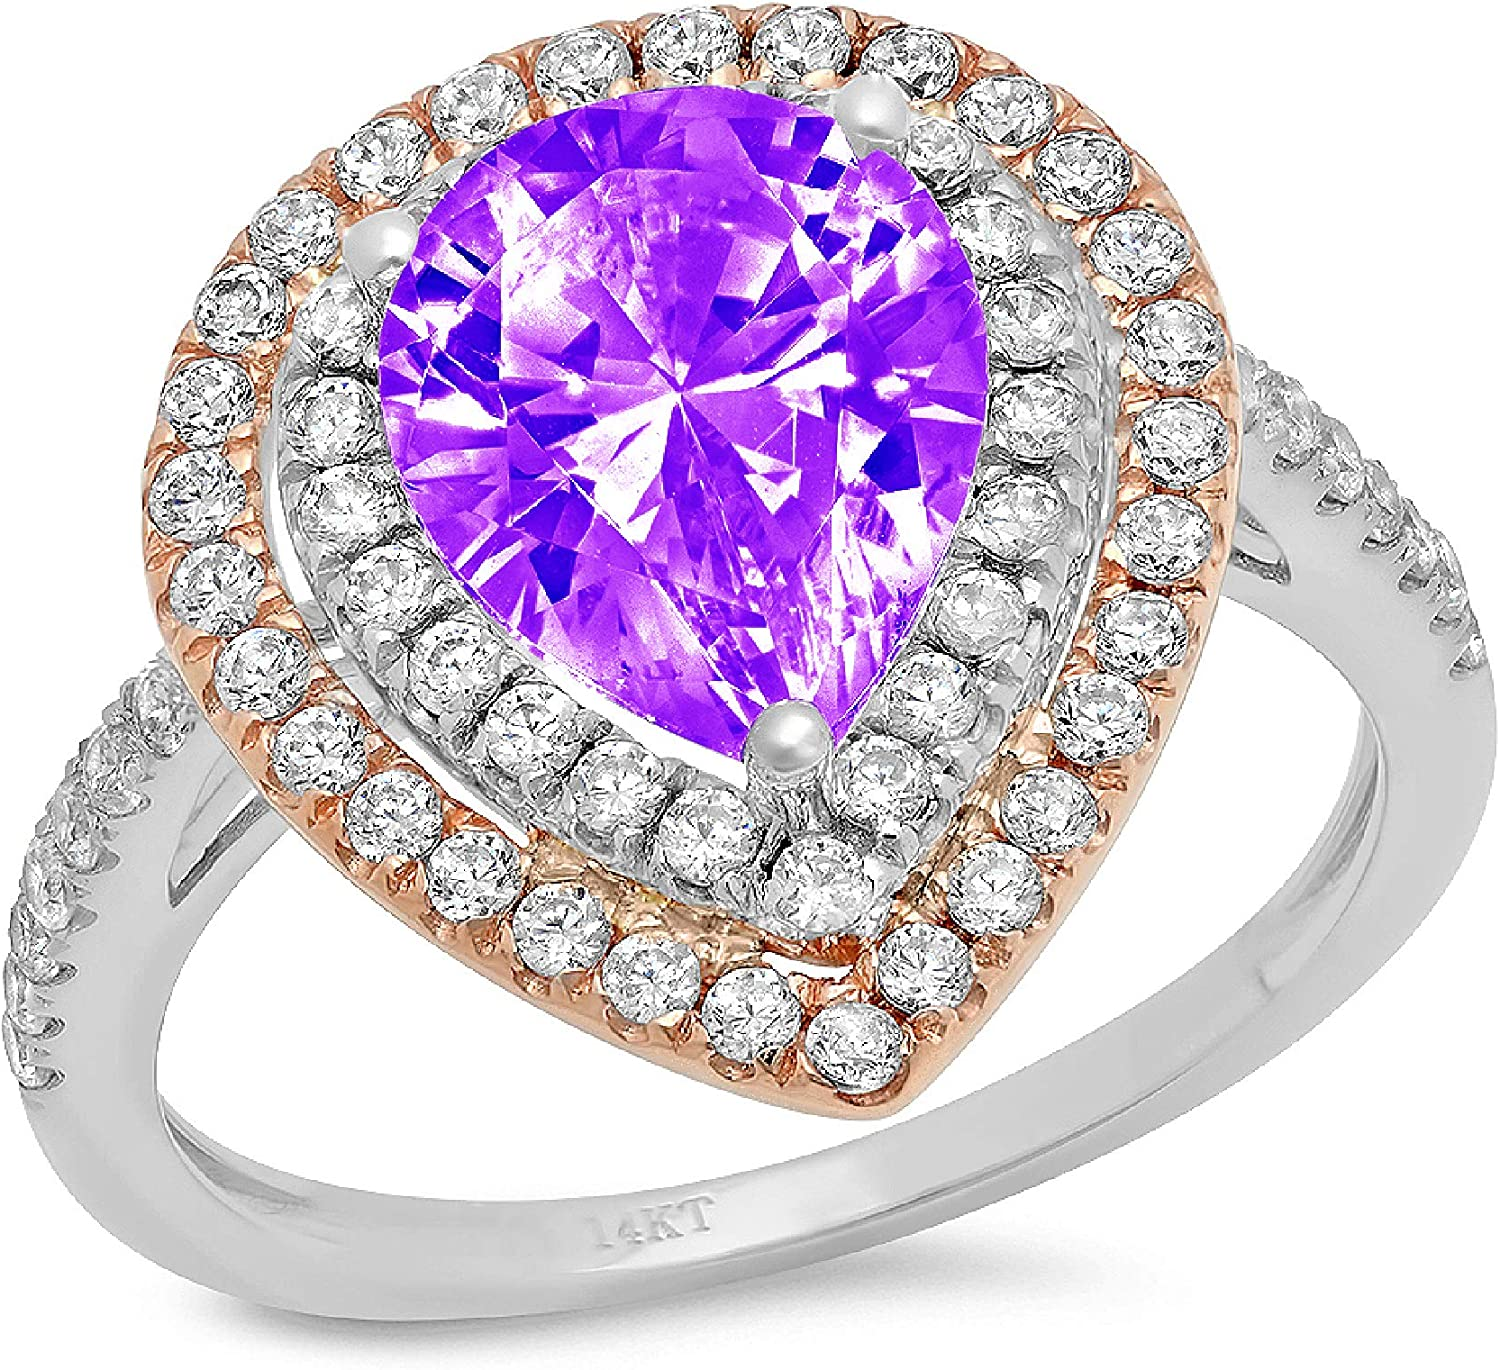 2.66 ct Pear Cut Double Halo Solitaire with Accent Natural Purple Amethyst Gem Stone Ideal VVS1 Engagement Promise Statement Anniversary Bridal Wedding Ring 14k 2 tone Gold